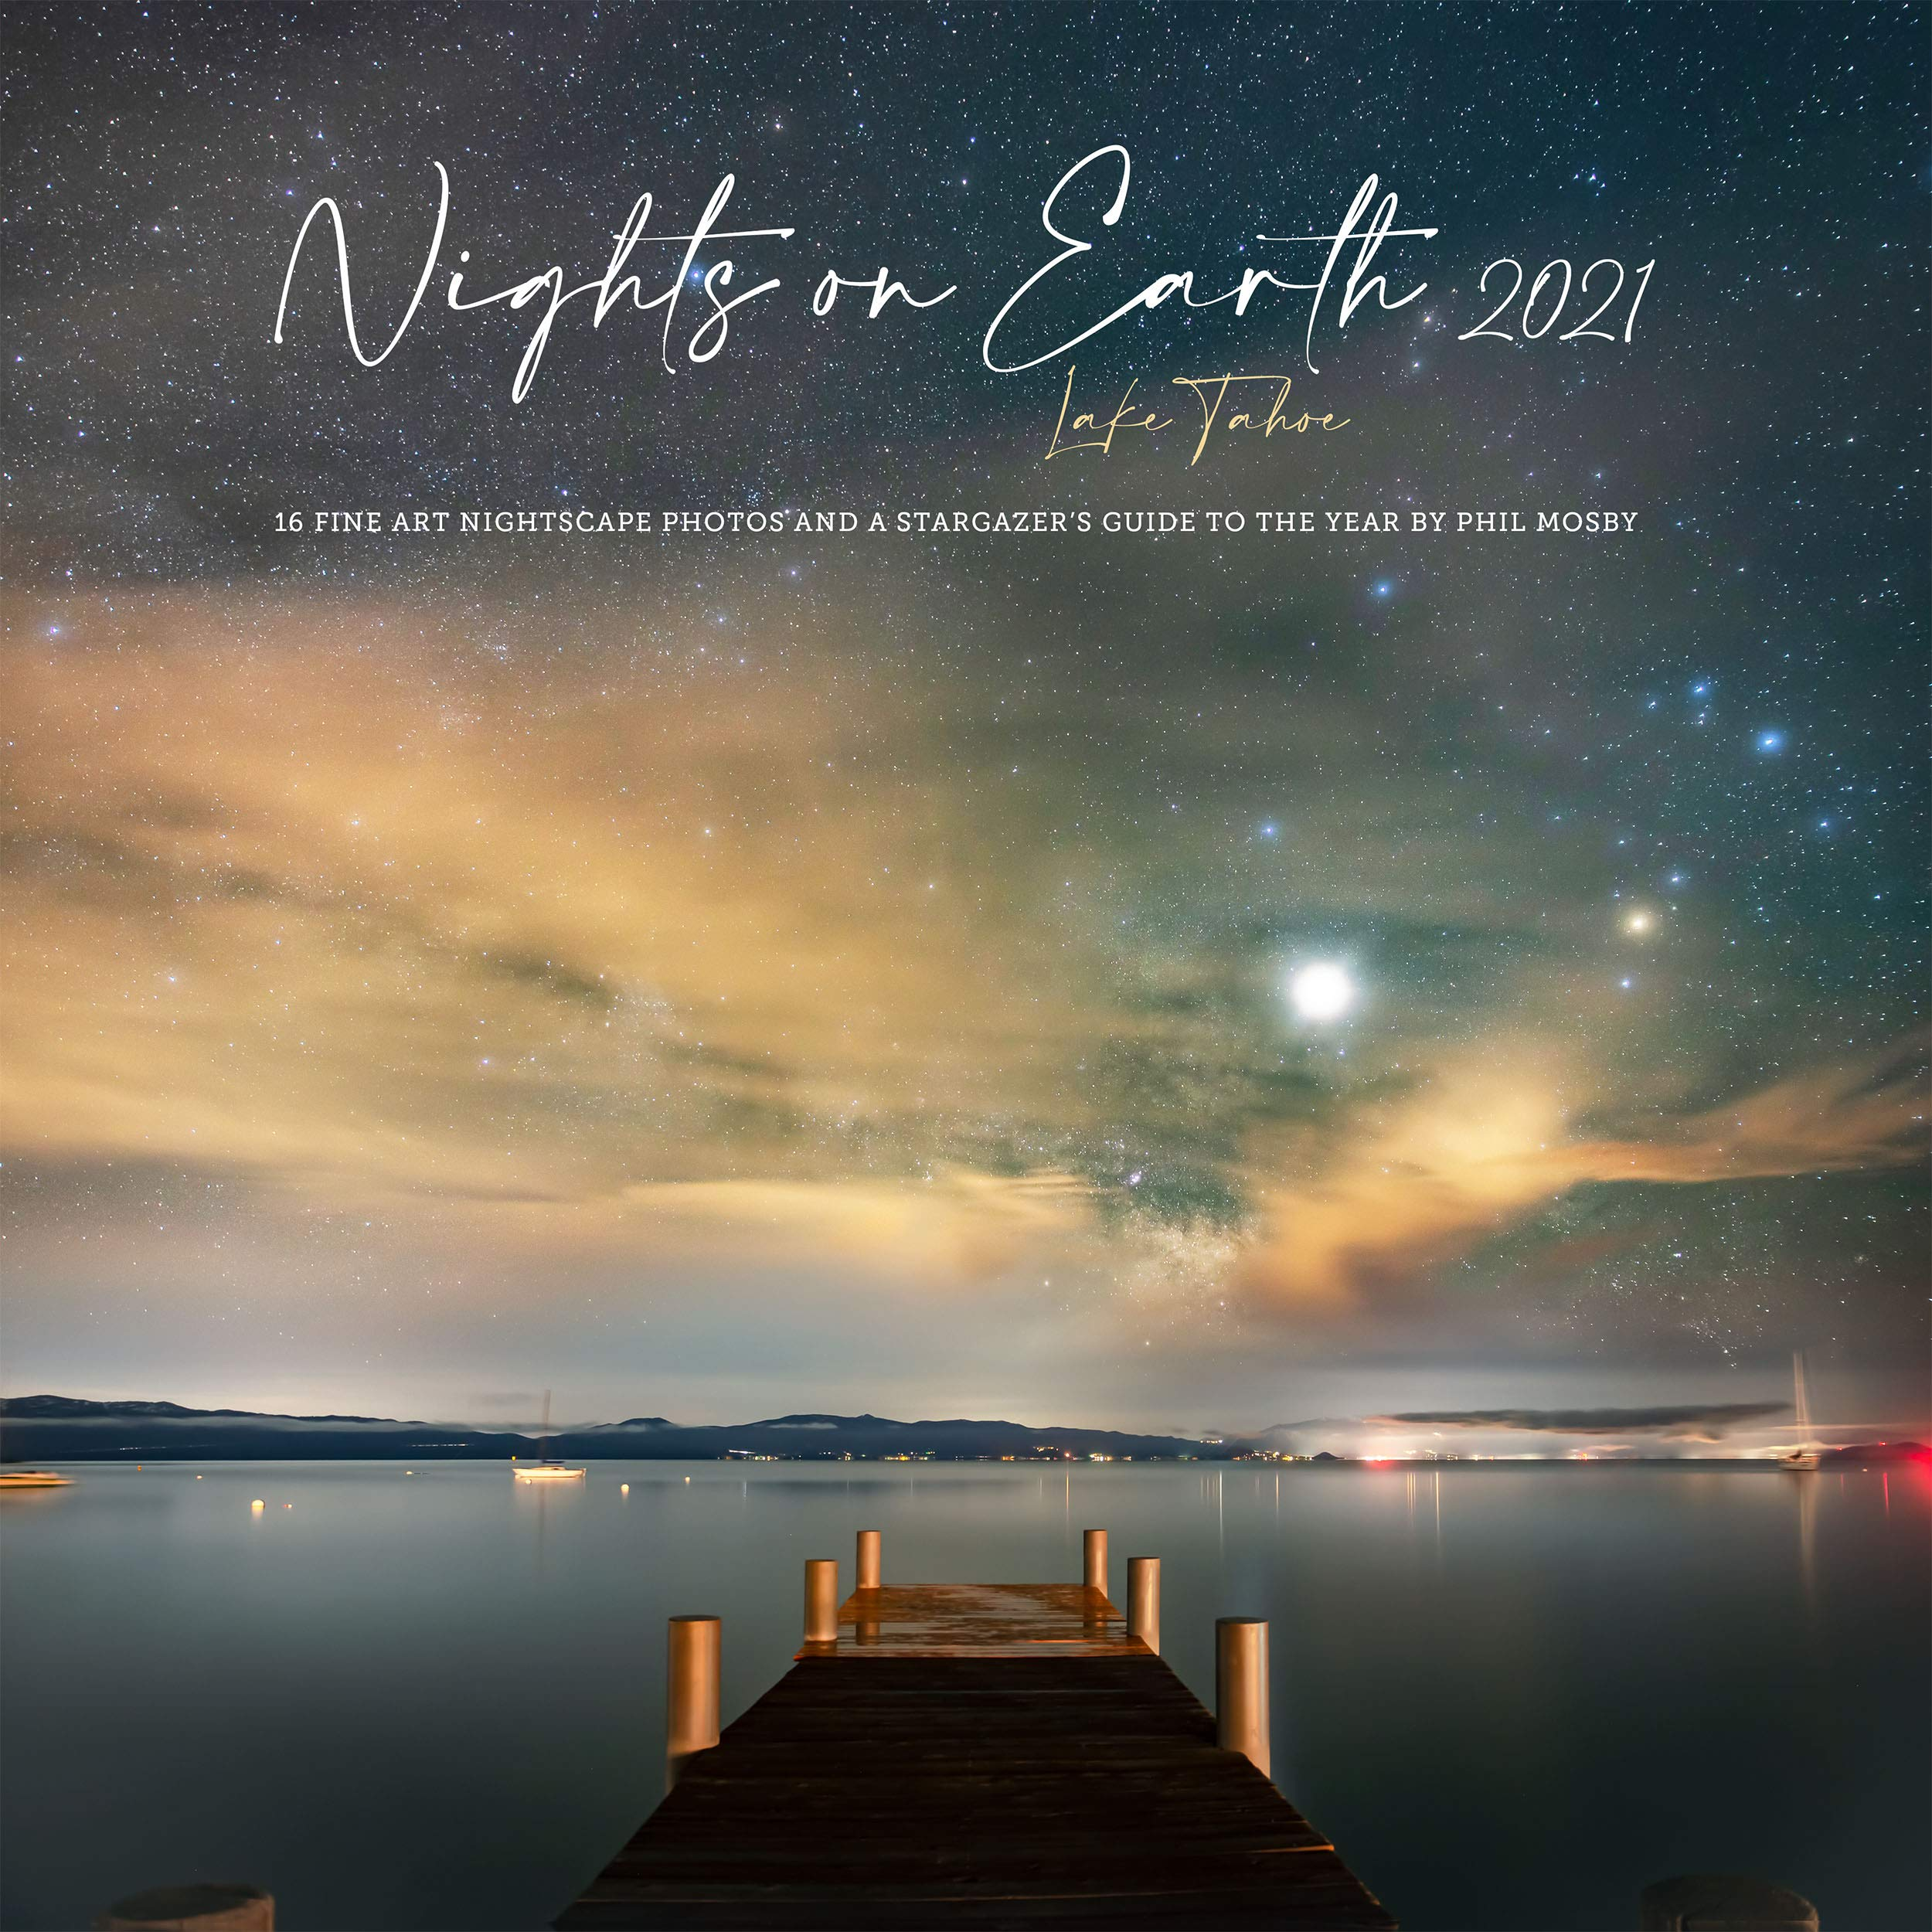 Astronomy Calendar 2022.Nights On Earth 2021 2022 Astro Landscape Photography Wall Calendar And Stargazer S Guide To The Night Sky Large 12 X 12 Phil Mosby Phil Mosby 9780692526361 Amazon Com Books